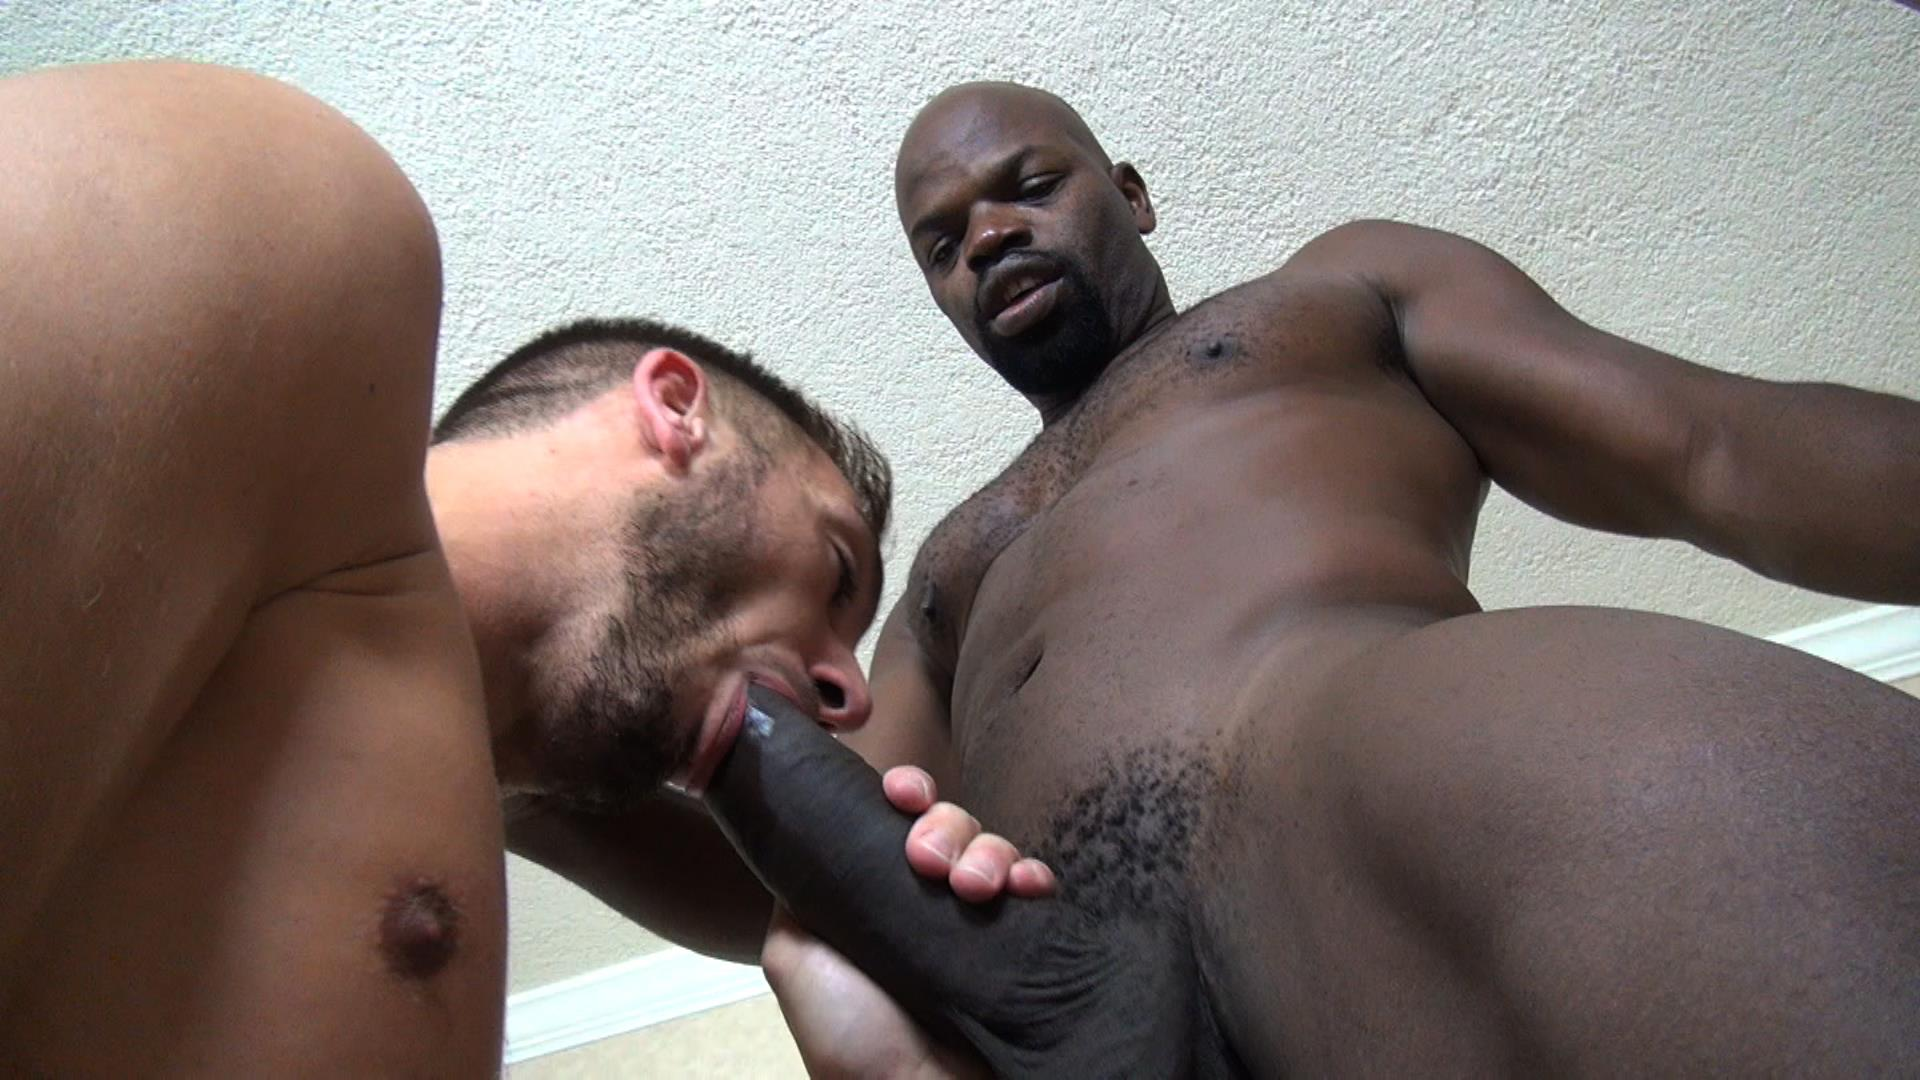 Interracial gang fucked tight white girl